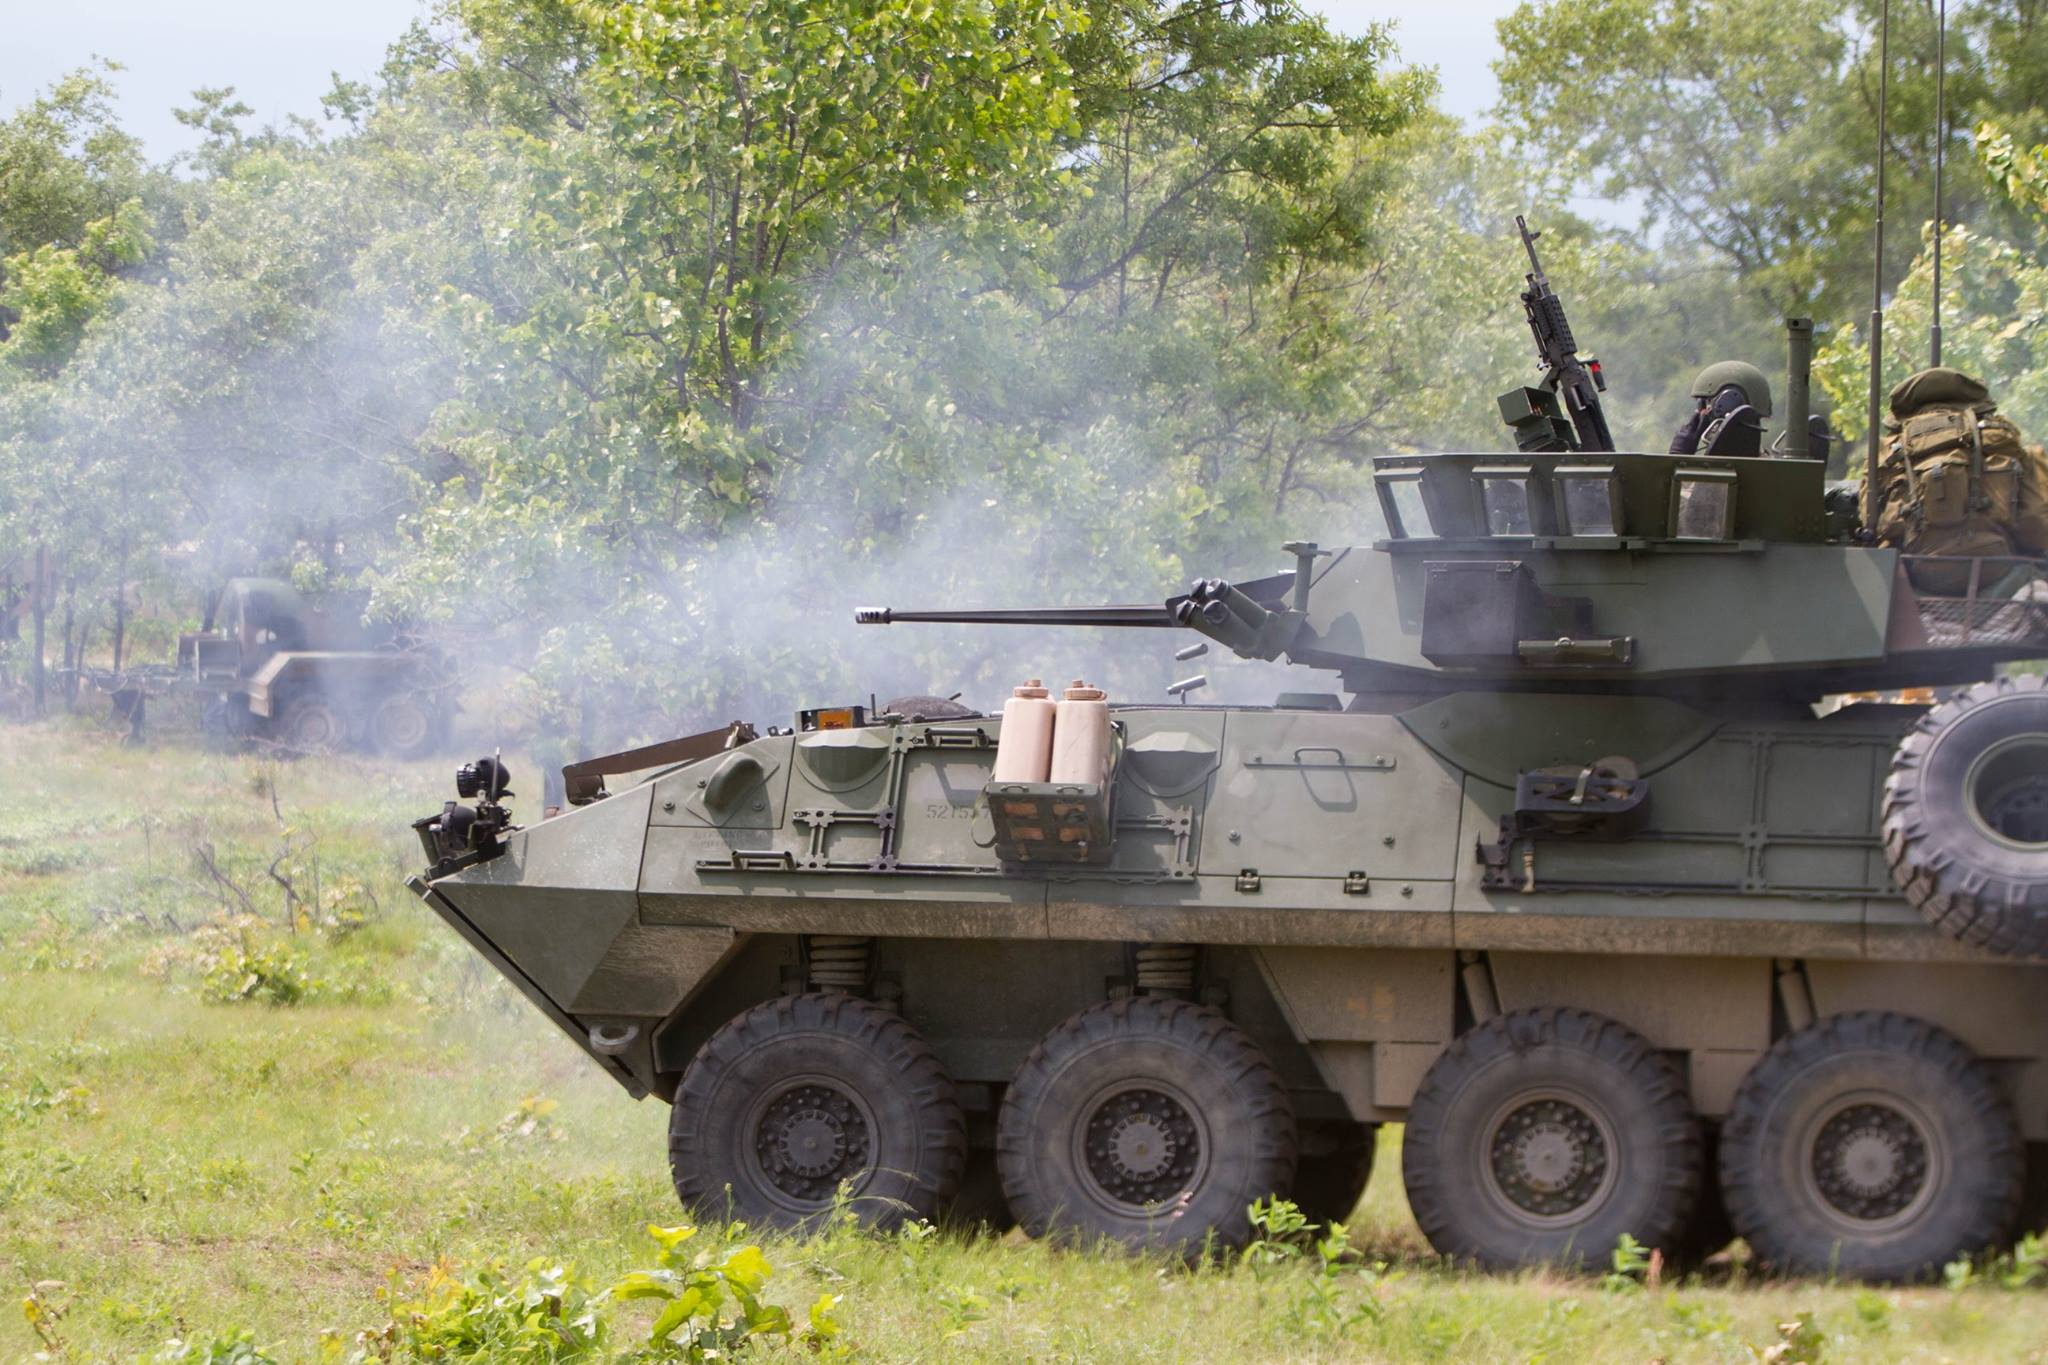 The Army's 82nd Airborne is preparing to use a Marine vehicle for airdrops